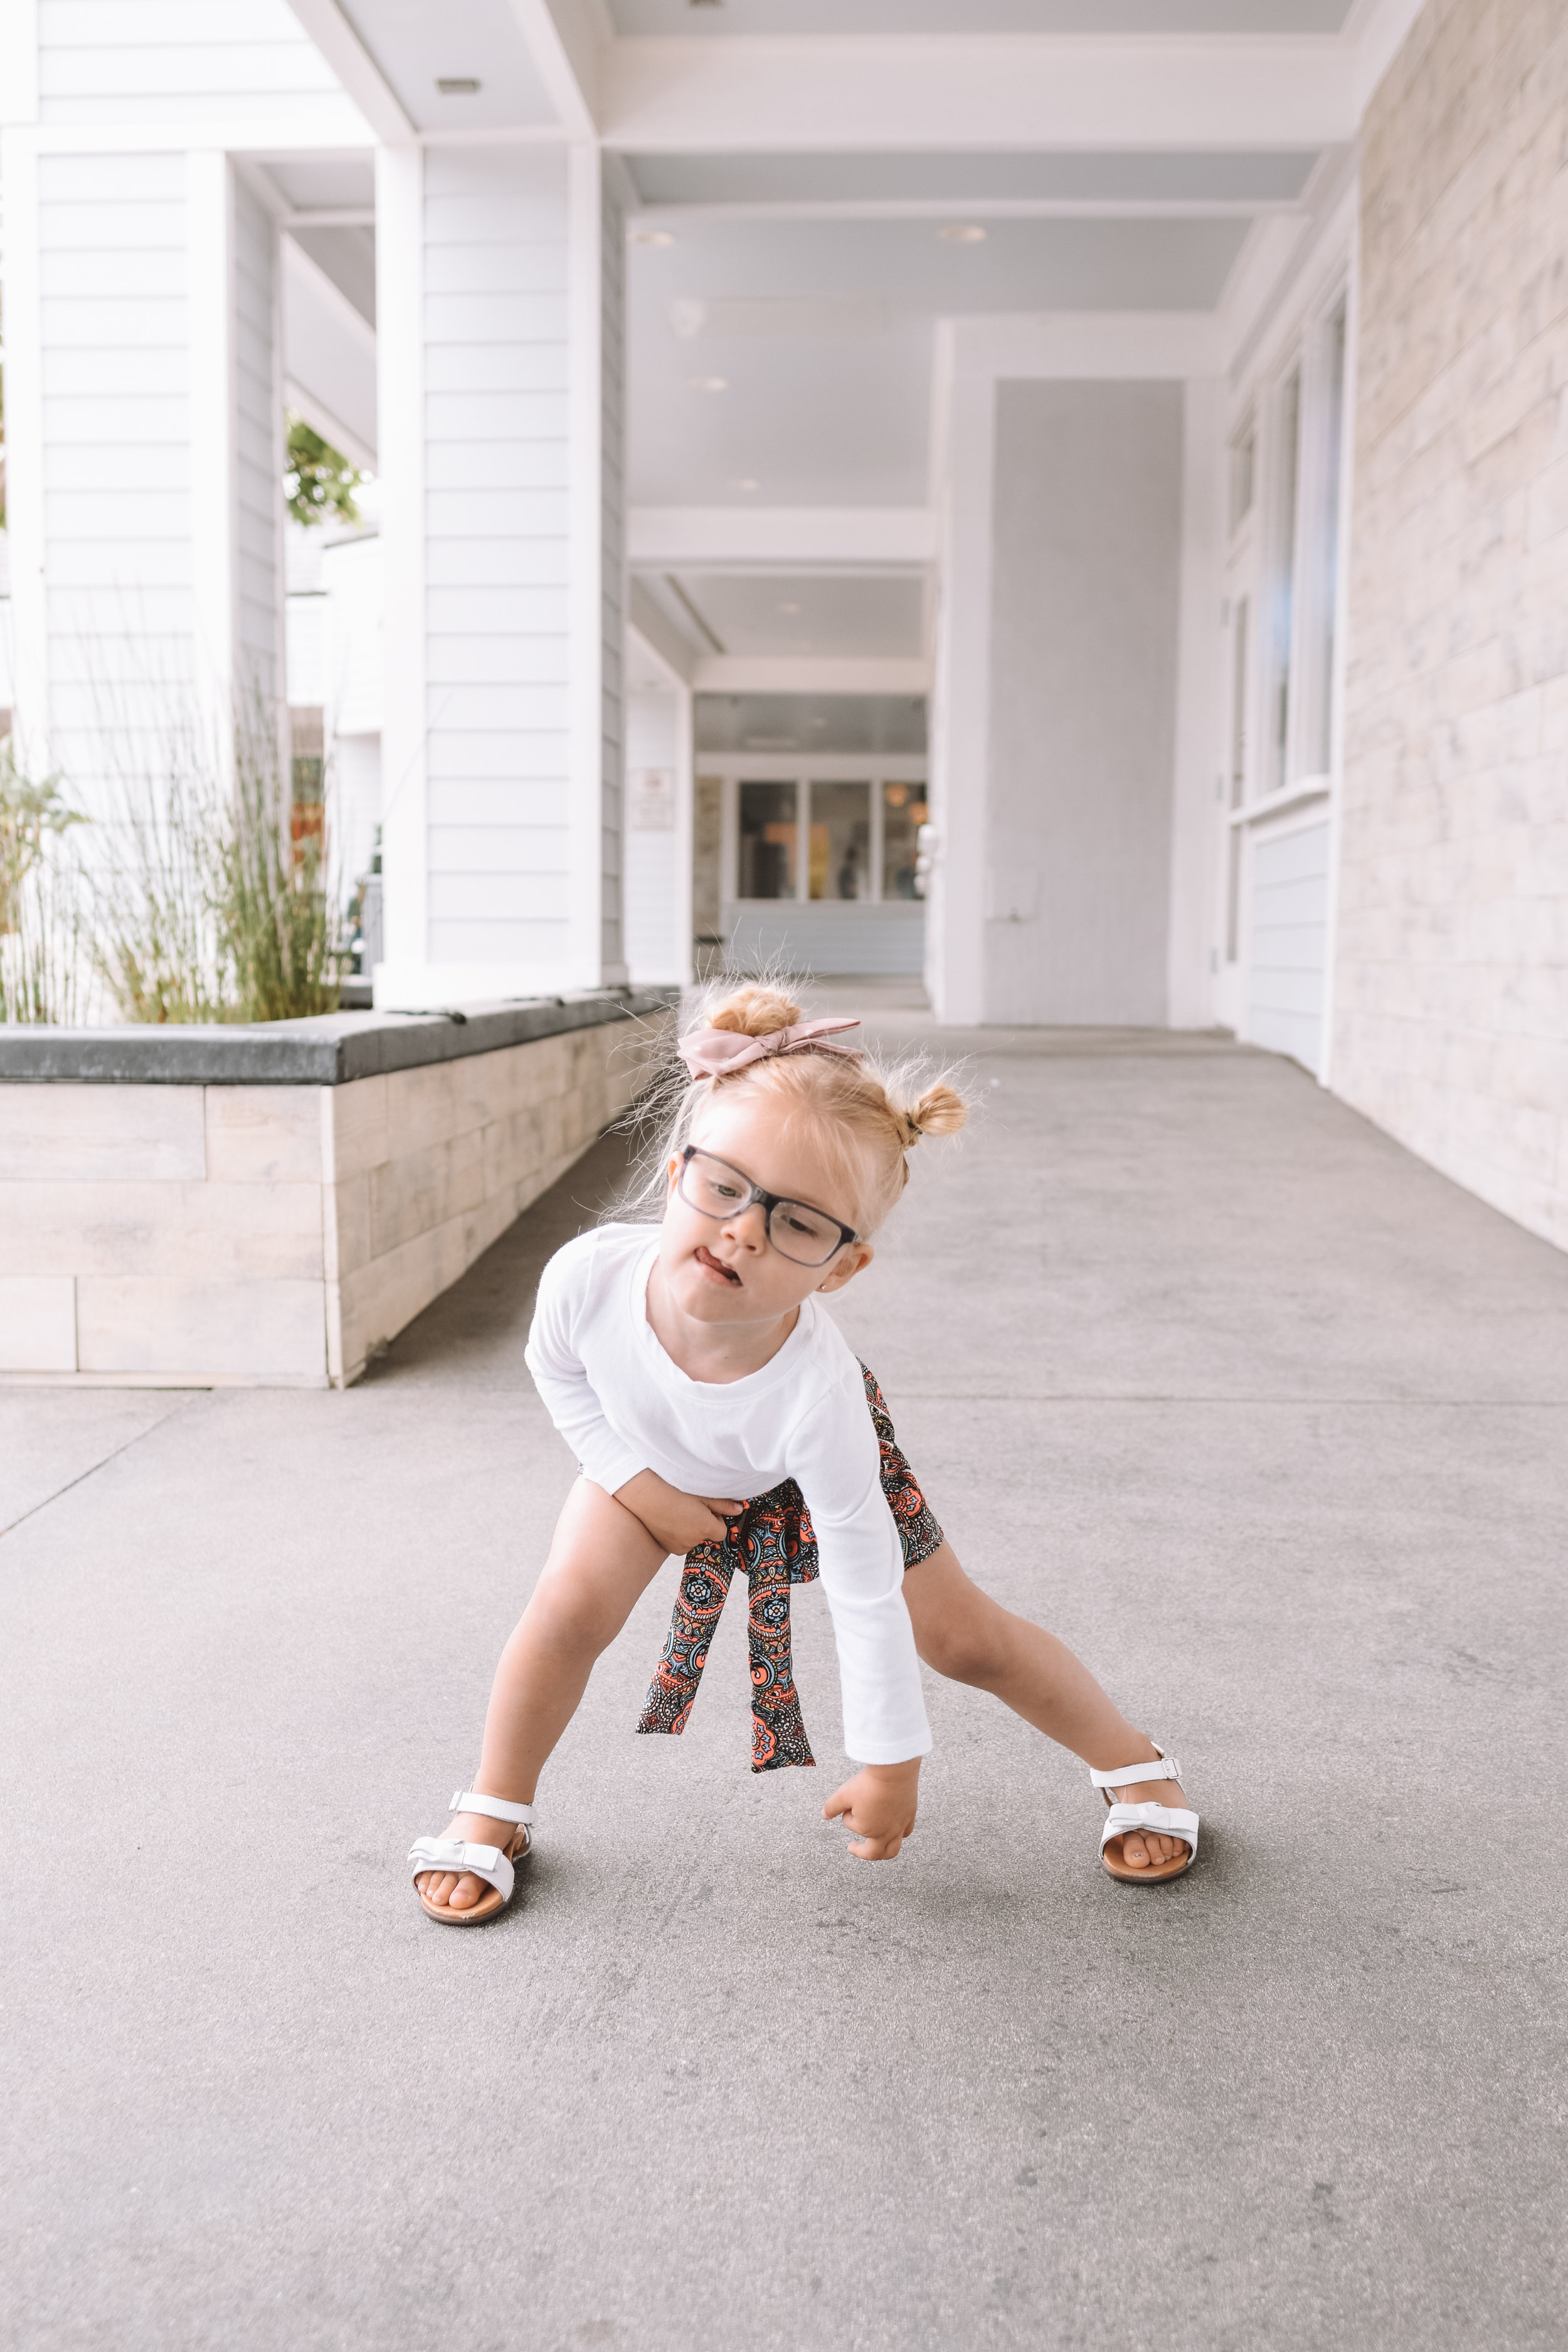 6 Tips for Choosing the Best Healthy Shoes for Your Toddler - The Overwhelmed Mommy Blogger